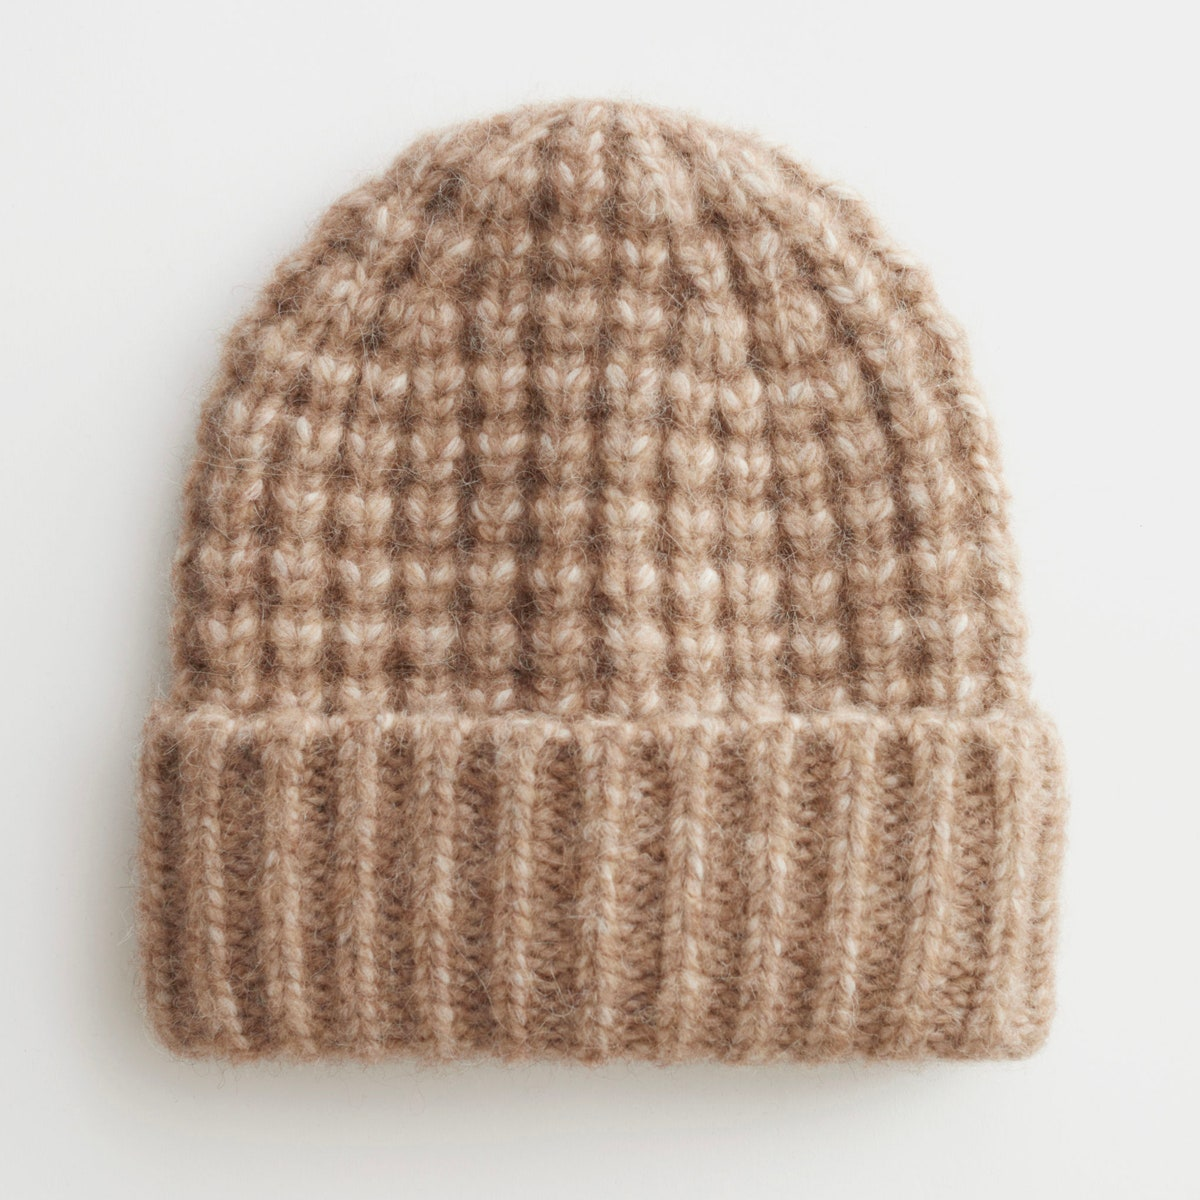 & Other Stories Chunky Knit Wool Blend Beanie